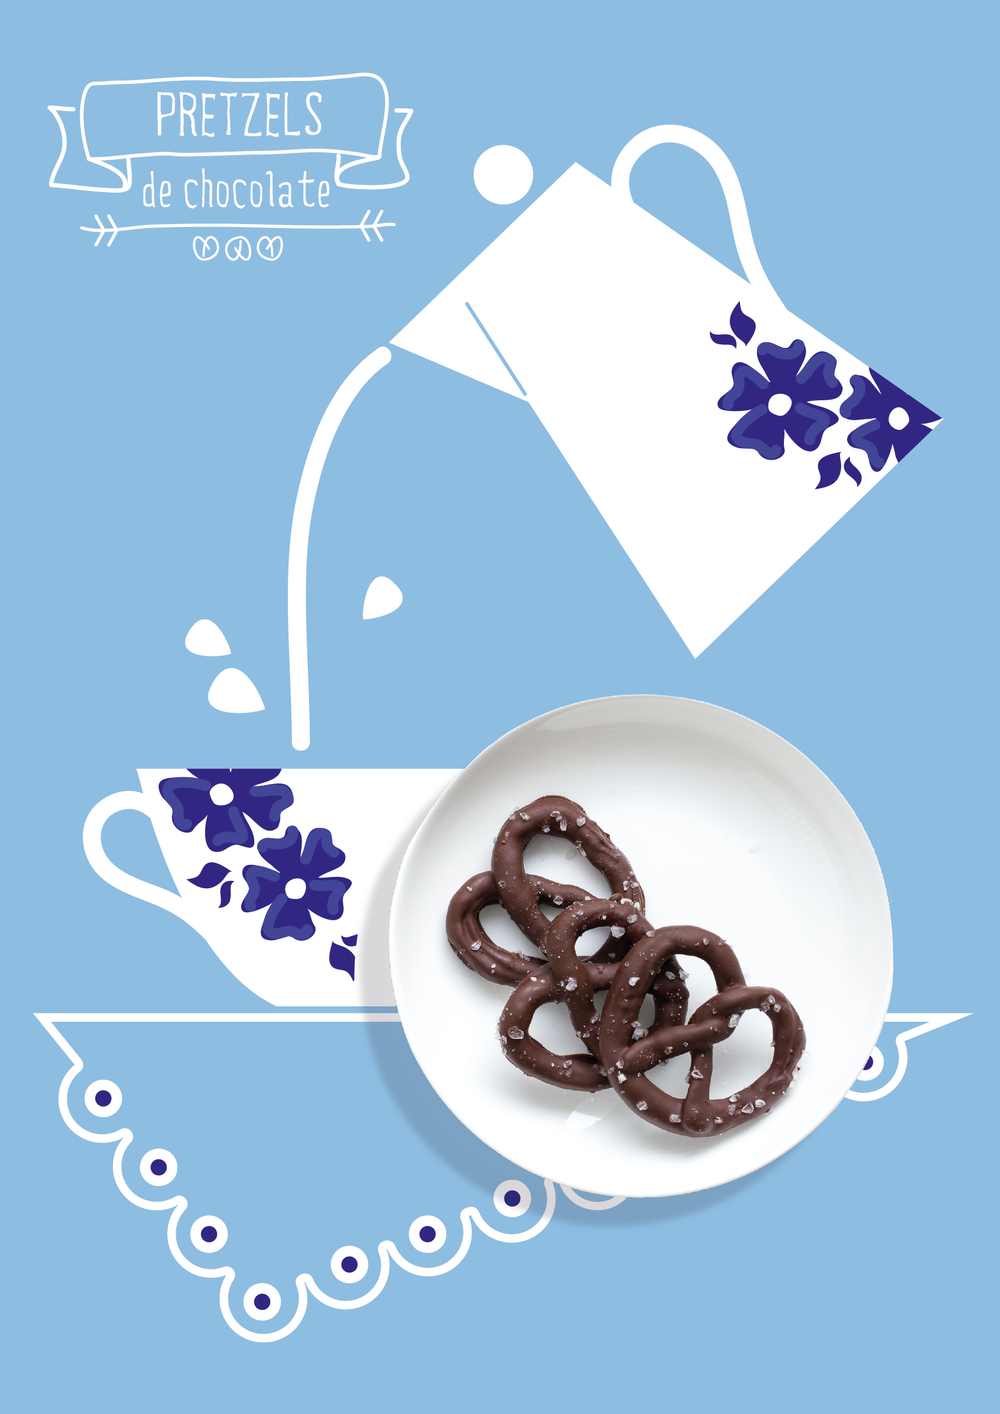 Pretzel de chocolate